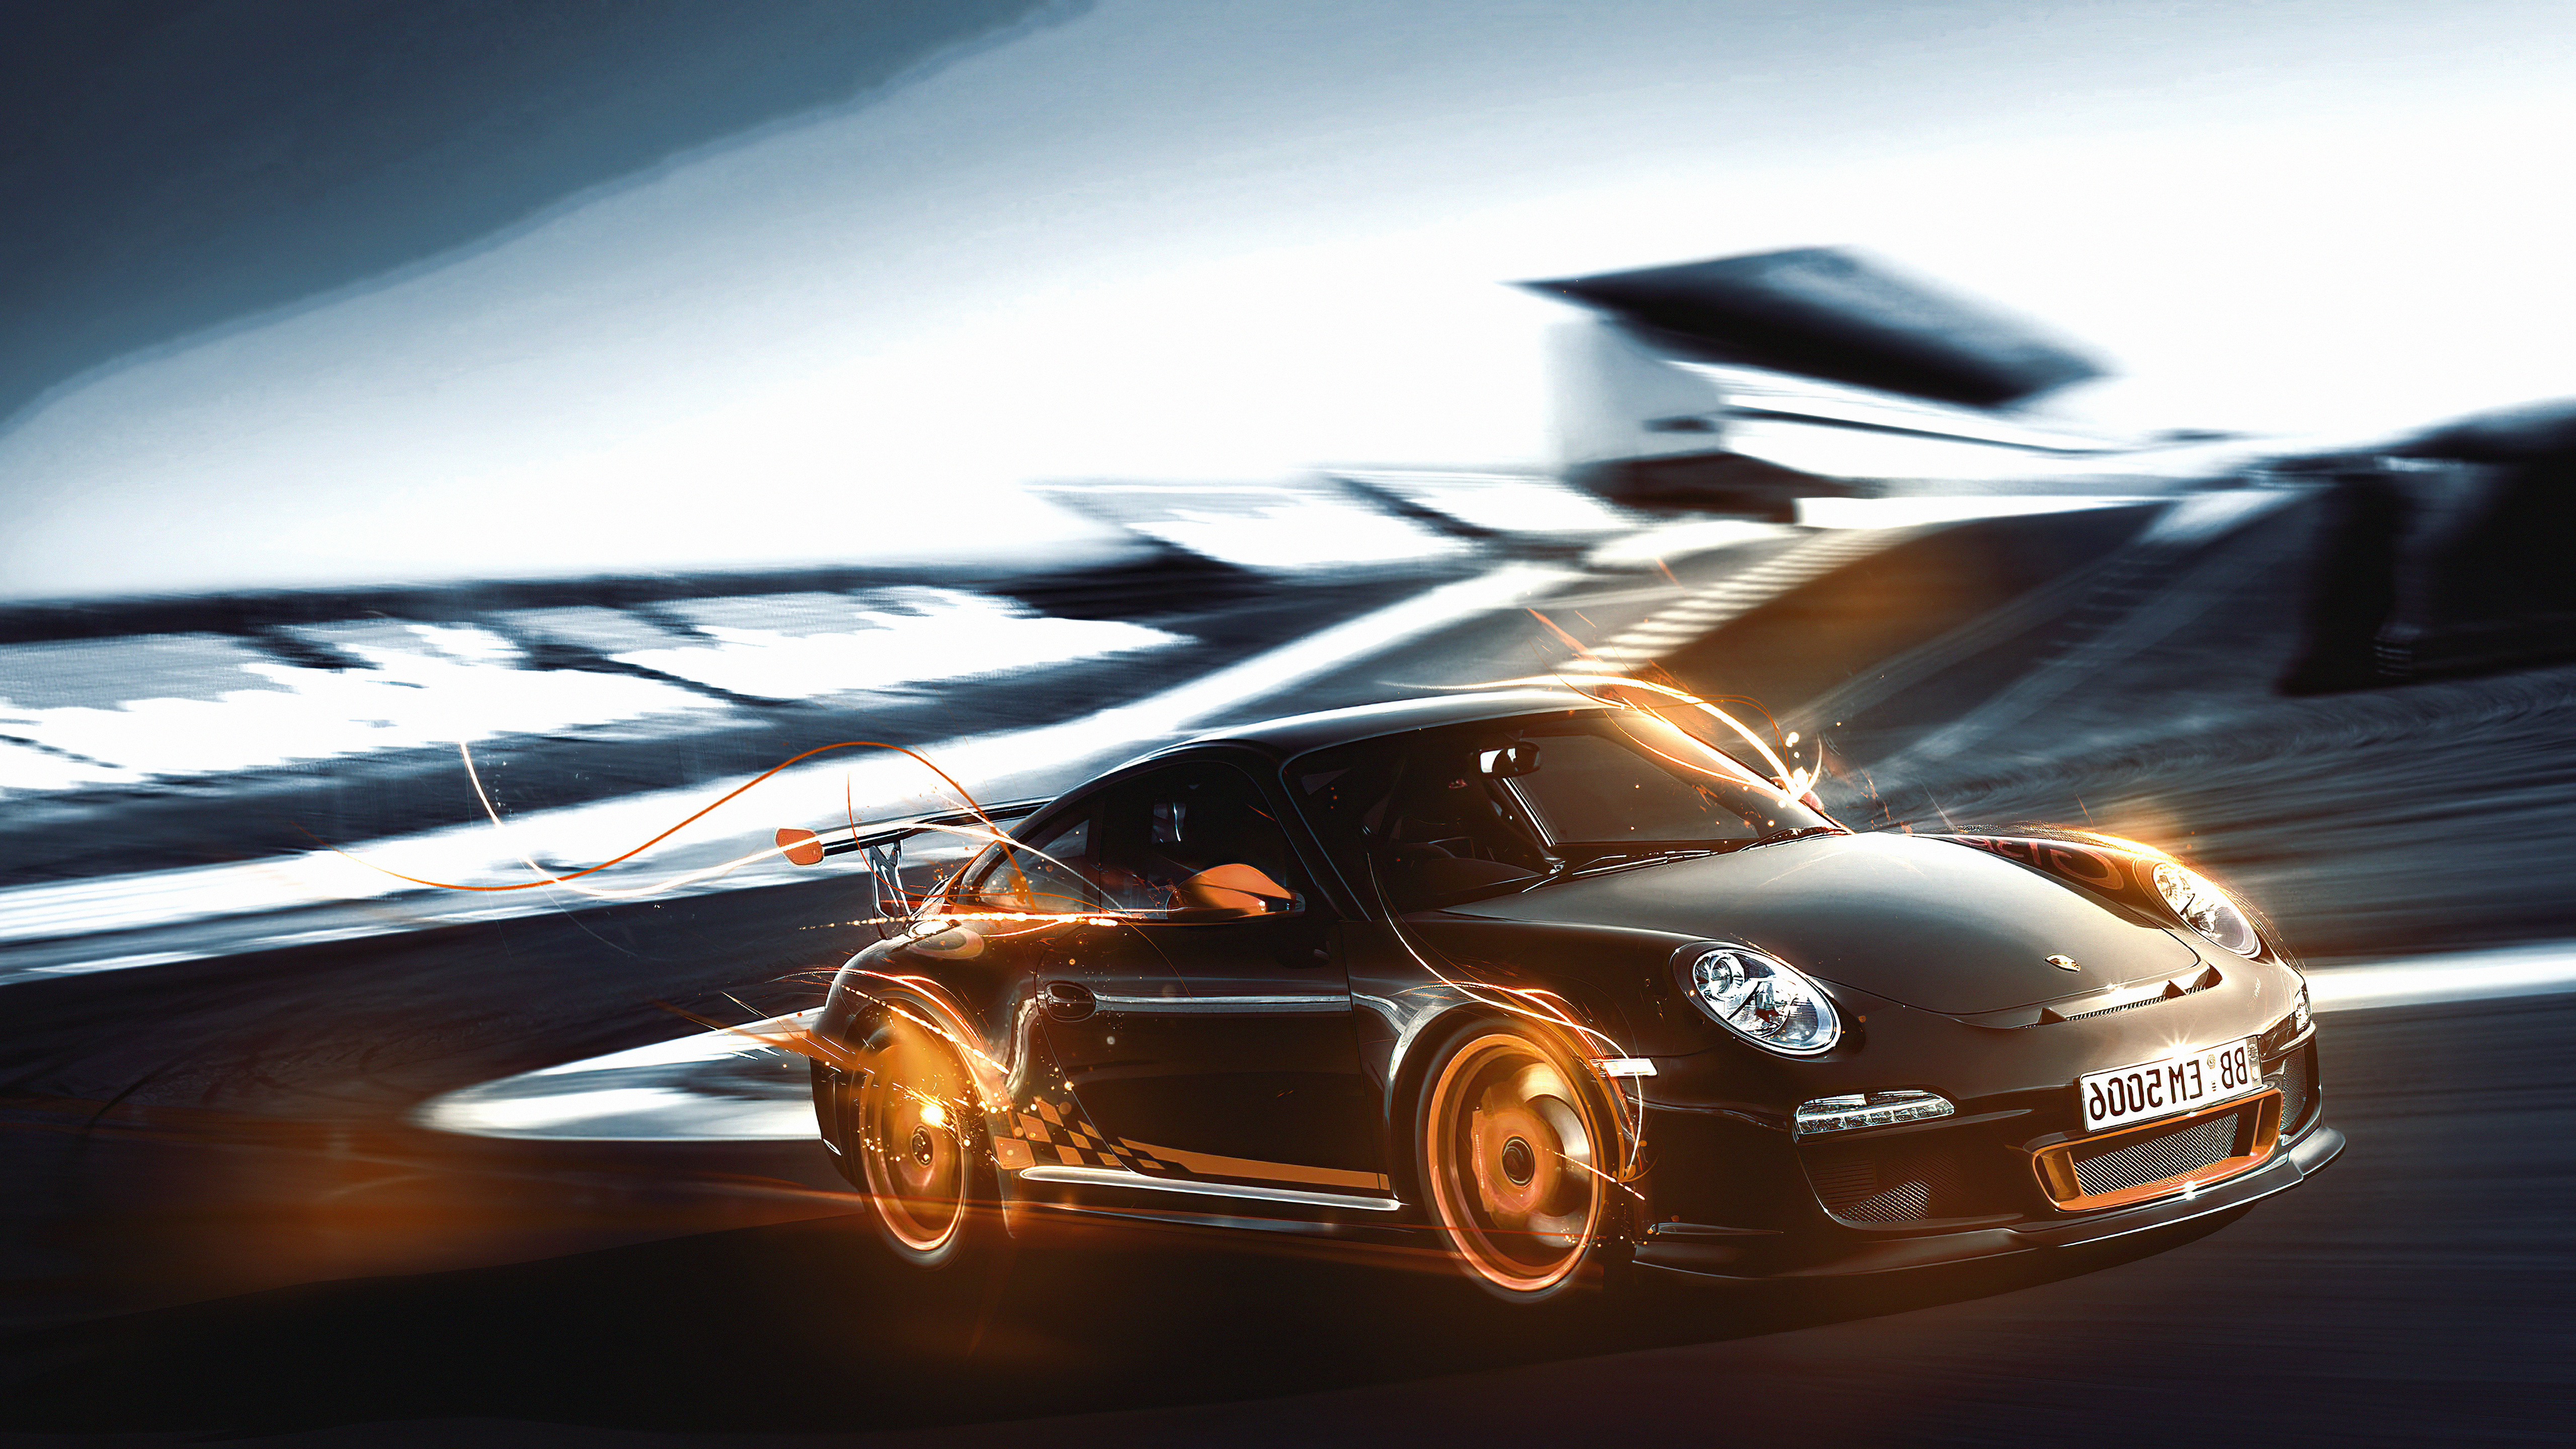 porsche 911 on track 4k 1620170158 - Porsche 911 On Track 4k - Porsche 911 On Track 4k wallpapers